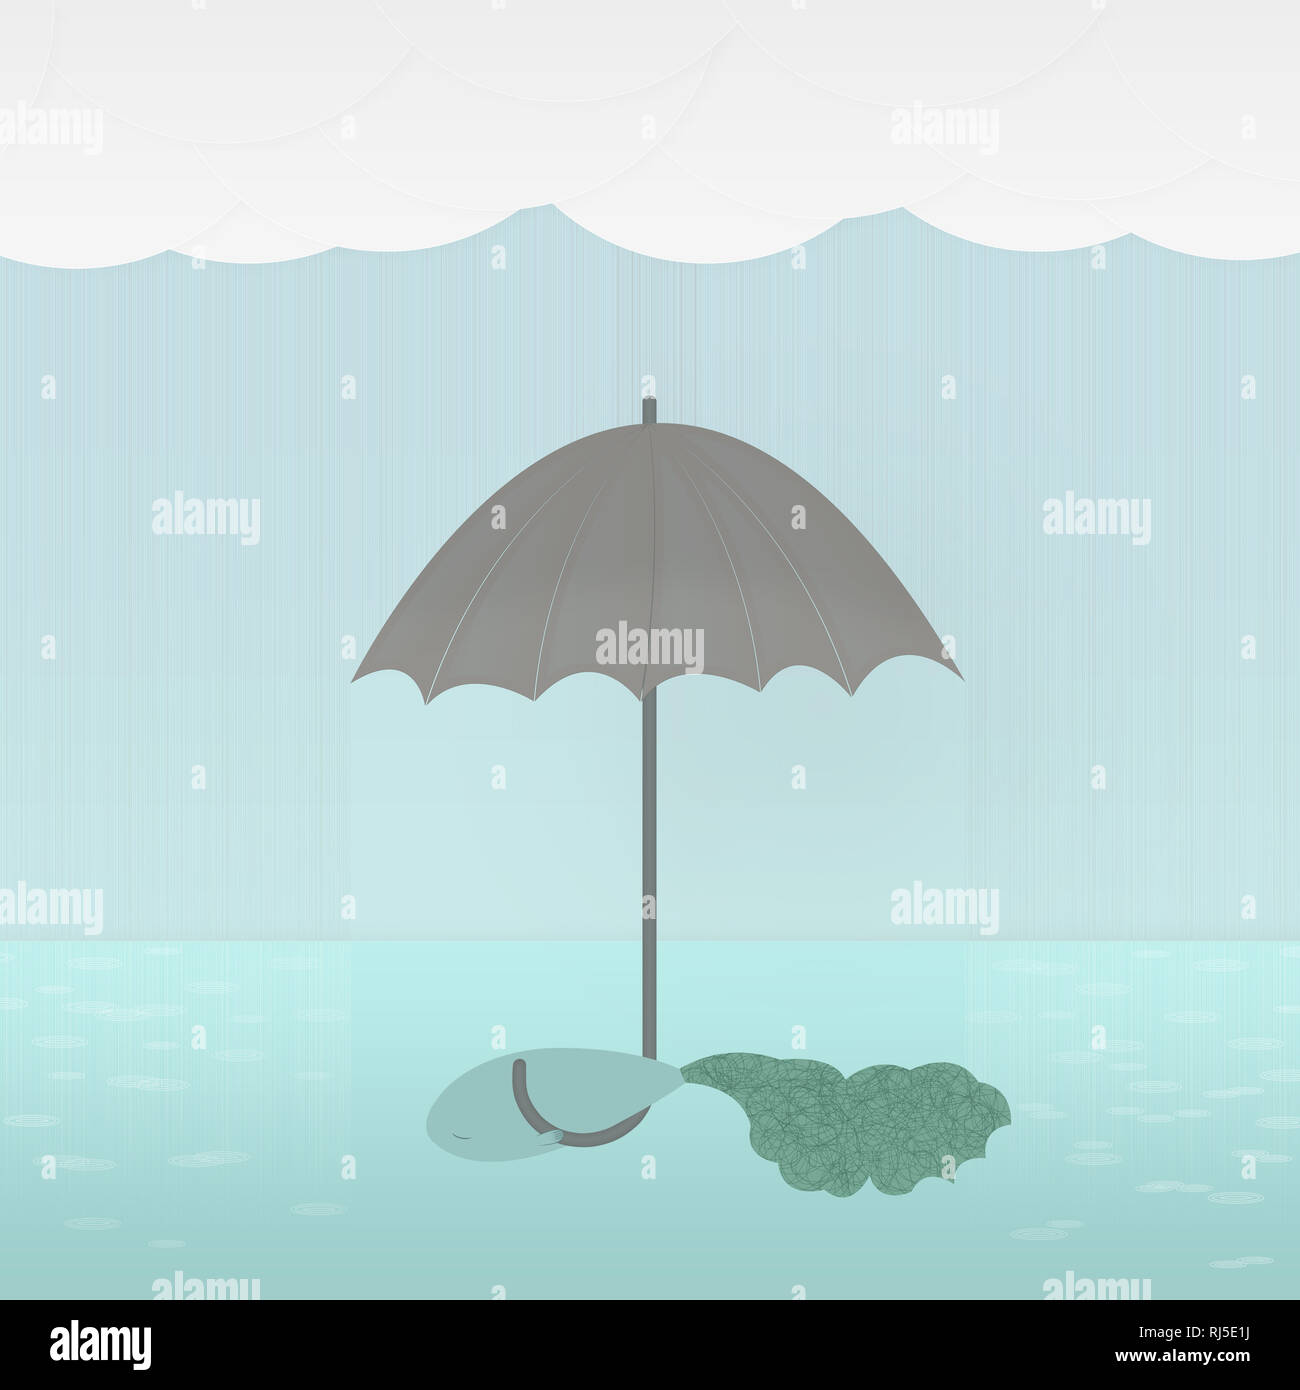 Abstract illustration of a fish with an umbrella in the water in the rain - Stock Image